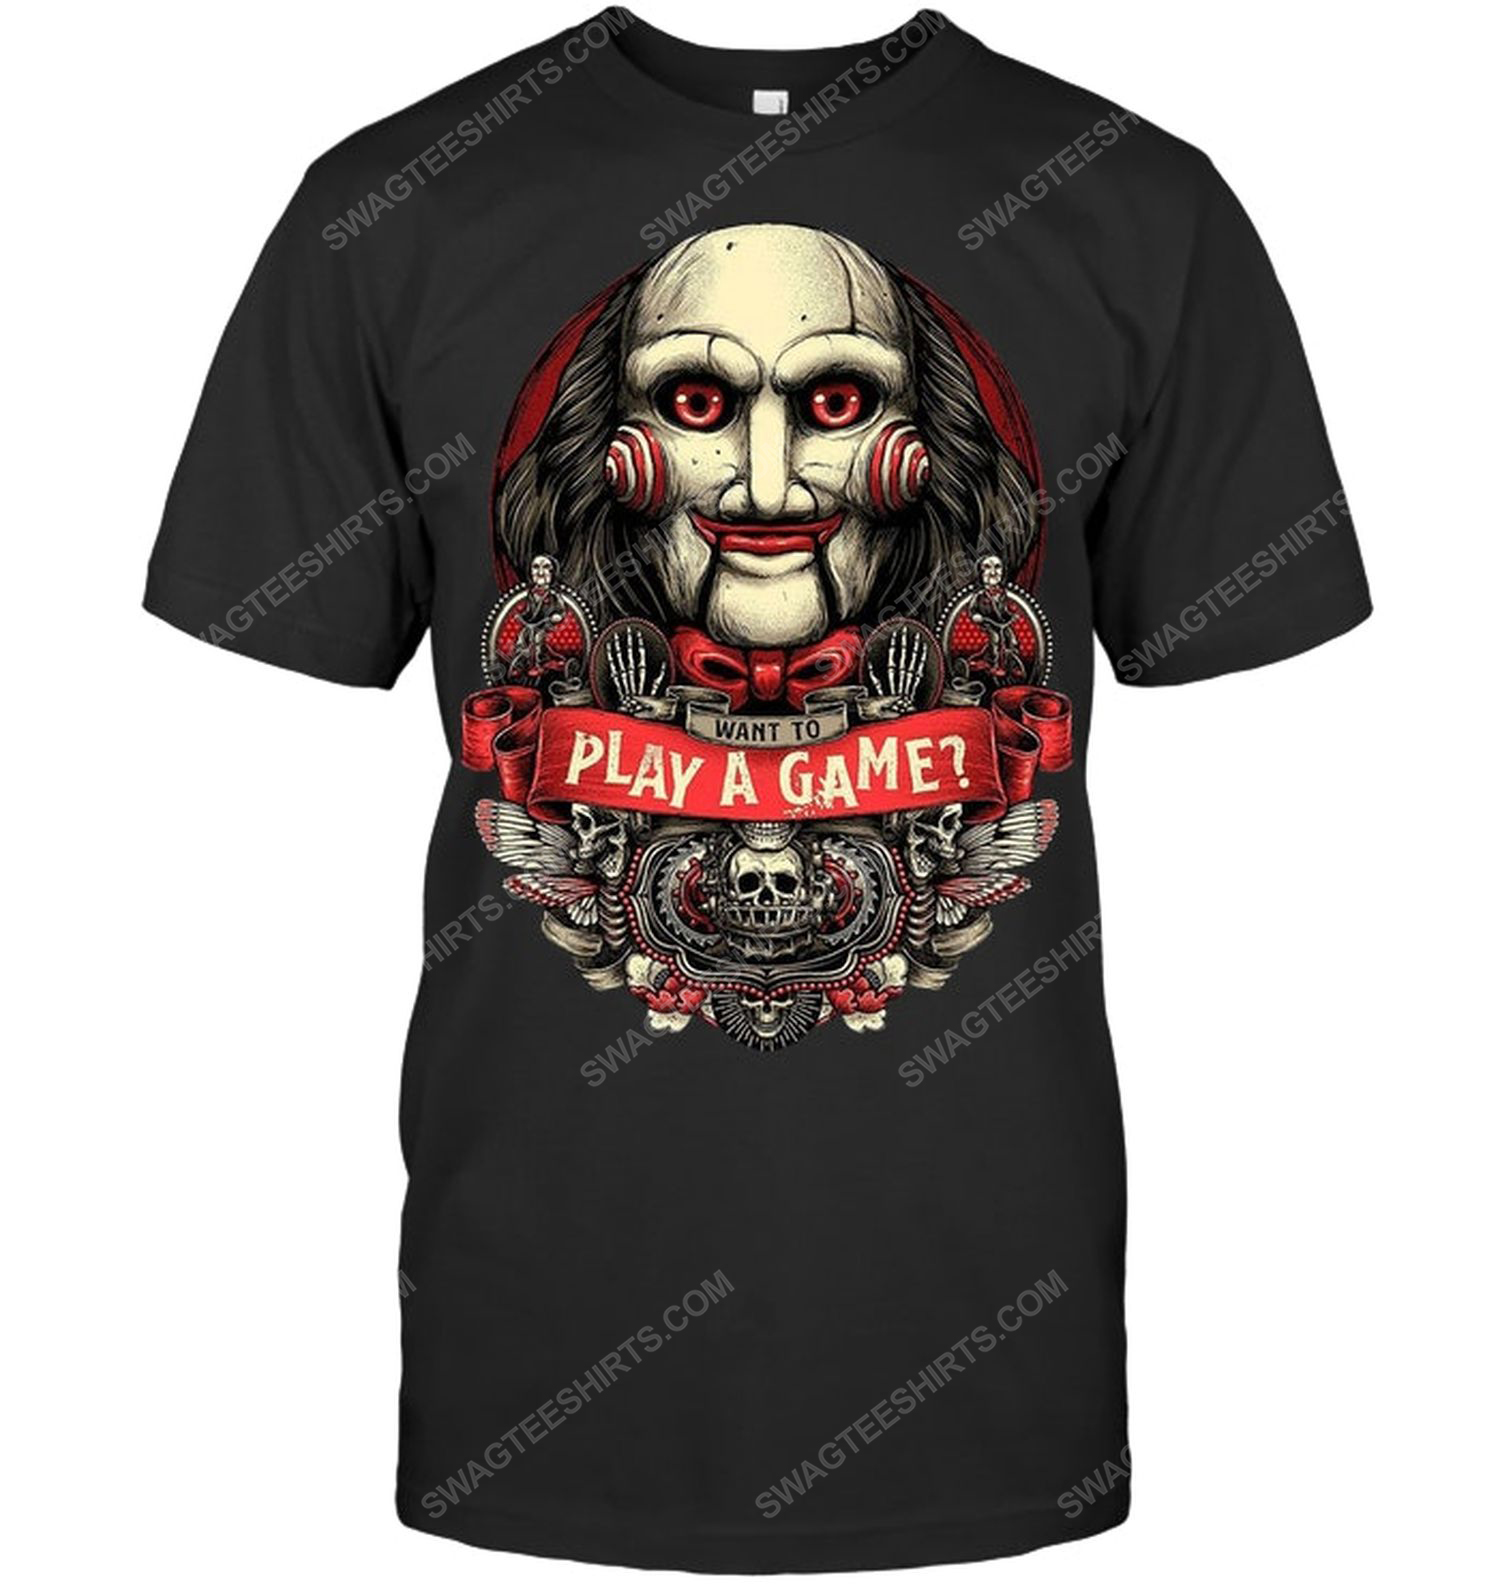 Jigsaw saw want to play a game halloween shirt 1